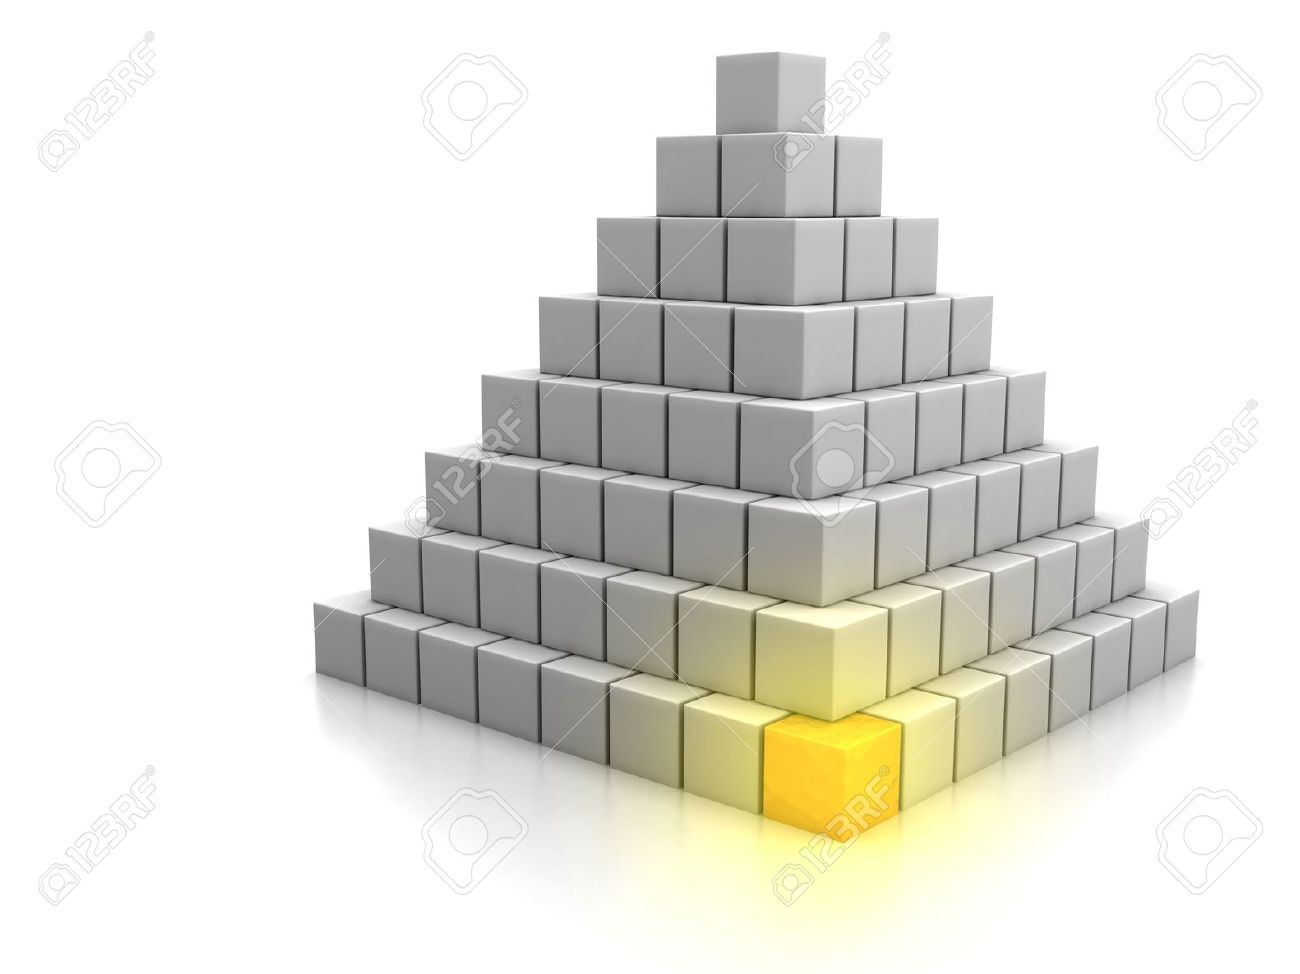 3636622-Computer-generated-concept-of-cornerstone-Stock-Photo-cornerstone-foundation-building